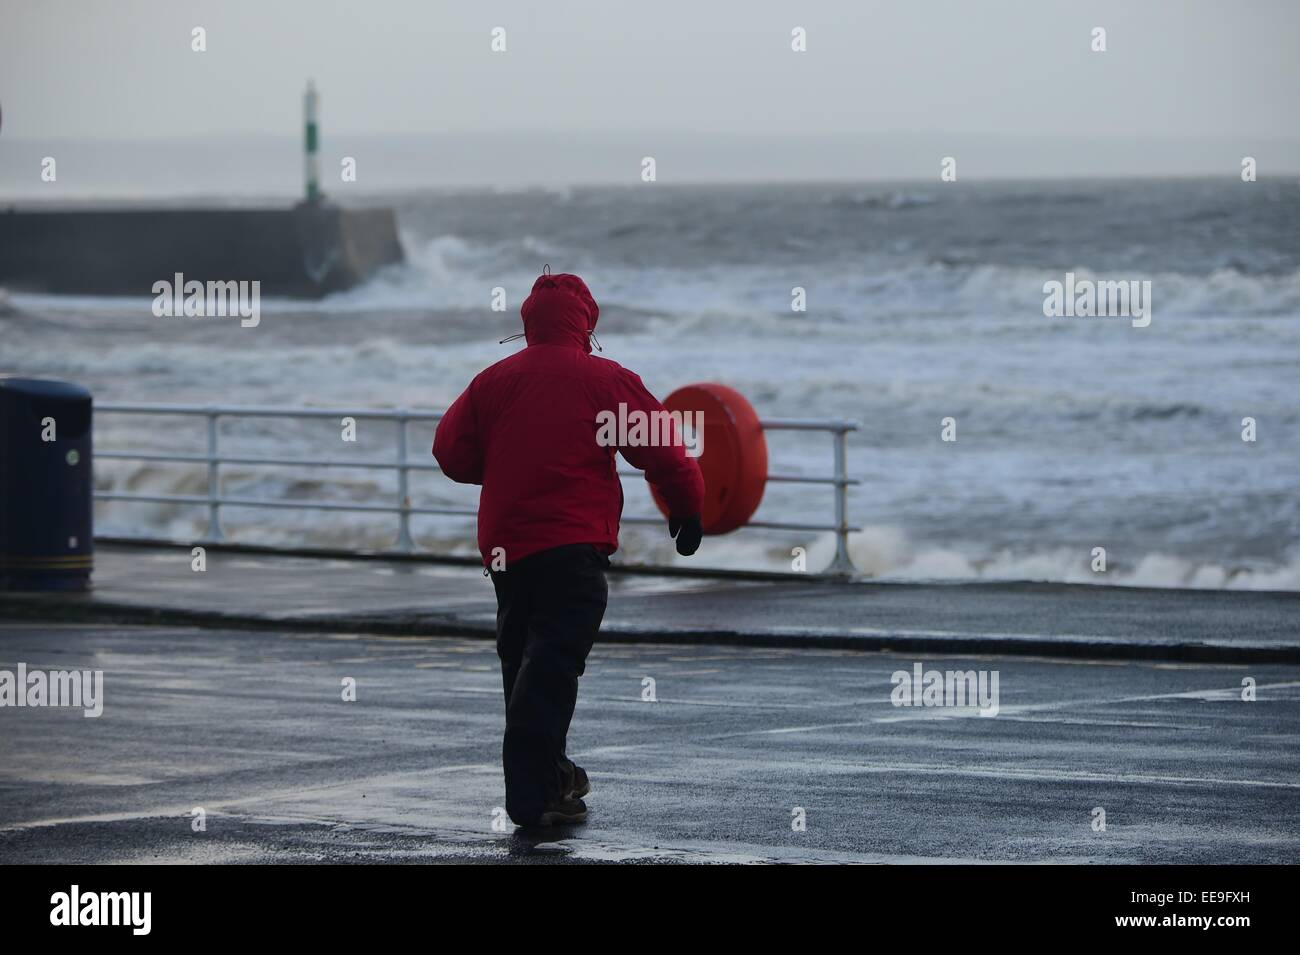 Aberystwyth, Wales, UK. 15th January, 2015. UK weather. Overnight stormy weather and driving rain in Aberystwyth - Stock Image